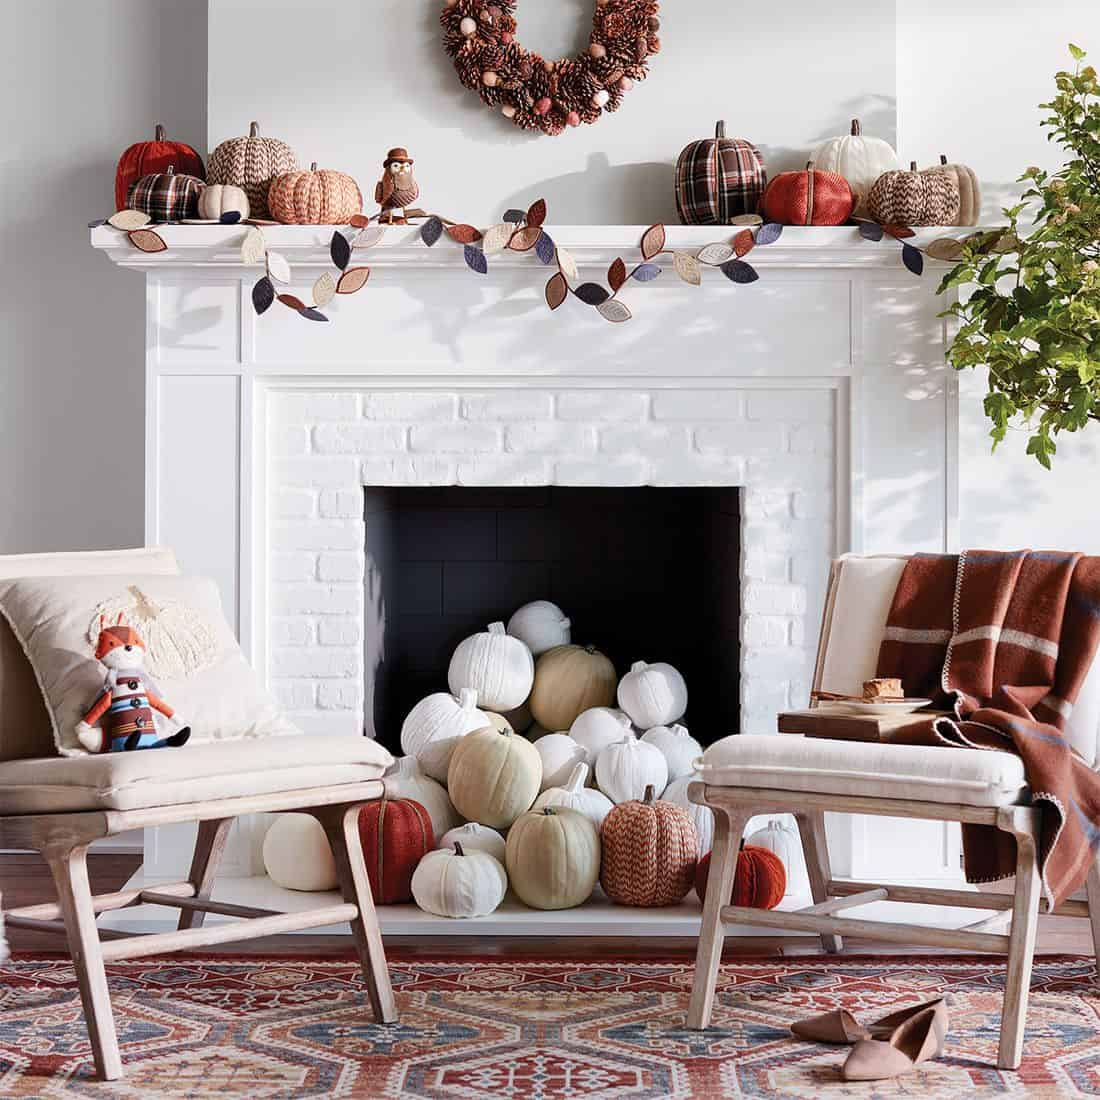 Room Decoration: 12 Ways To Create A Cozy Room For Fall